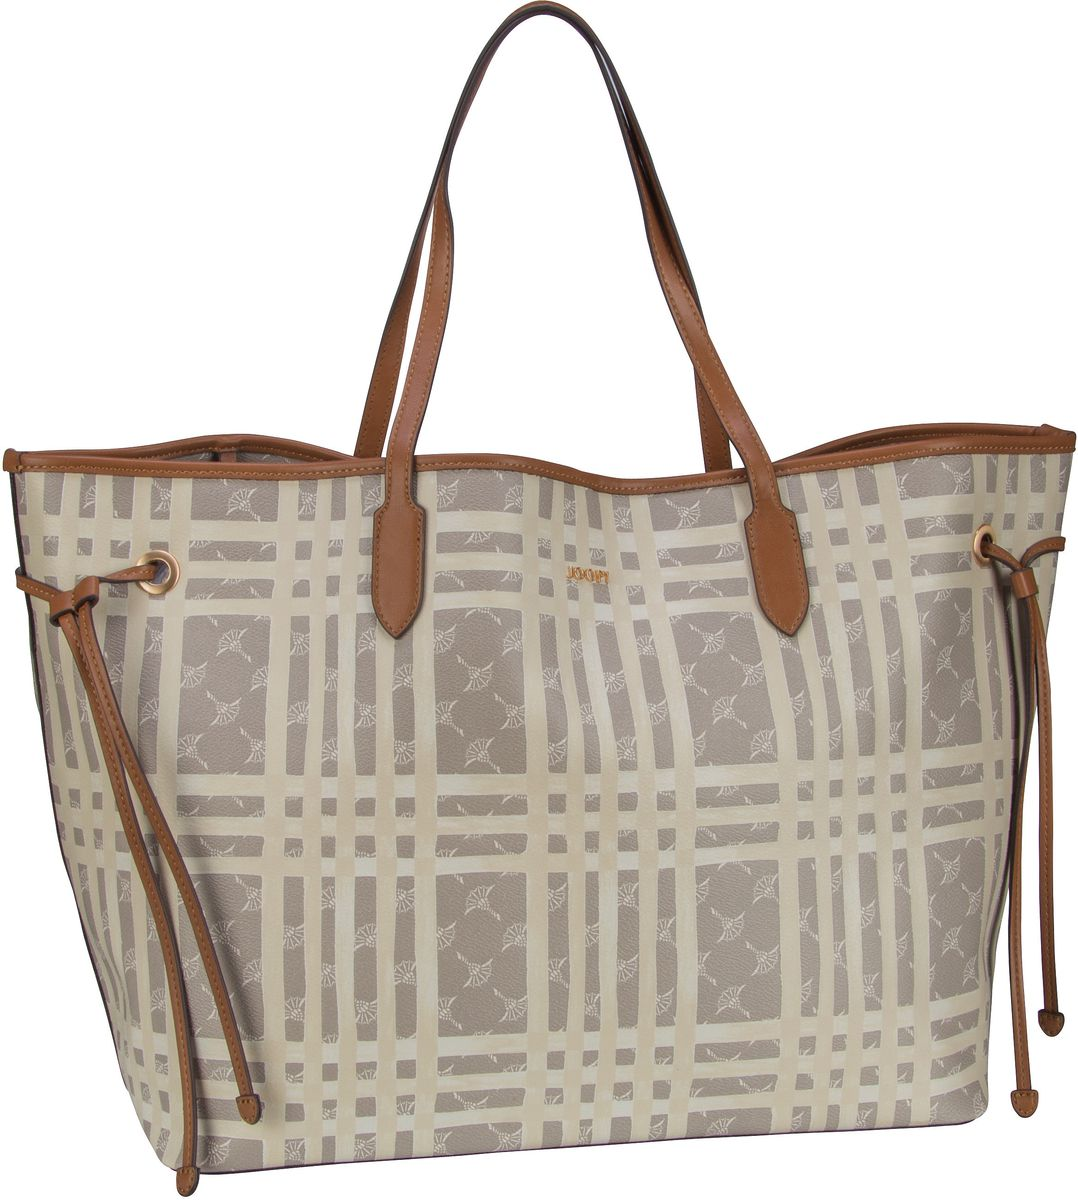 Shopper Cortina Cheque Lara Shopper XLHO Beige